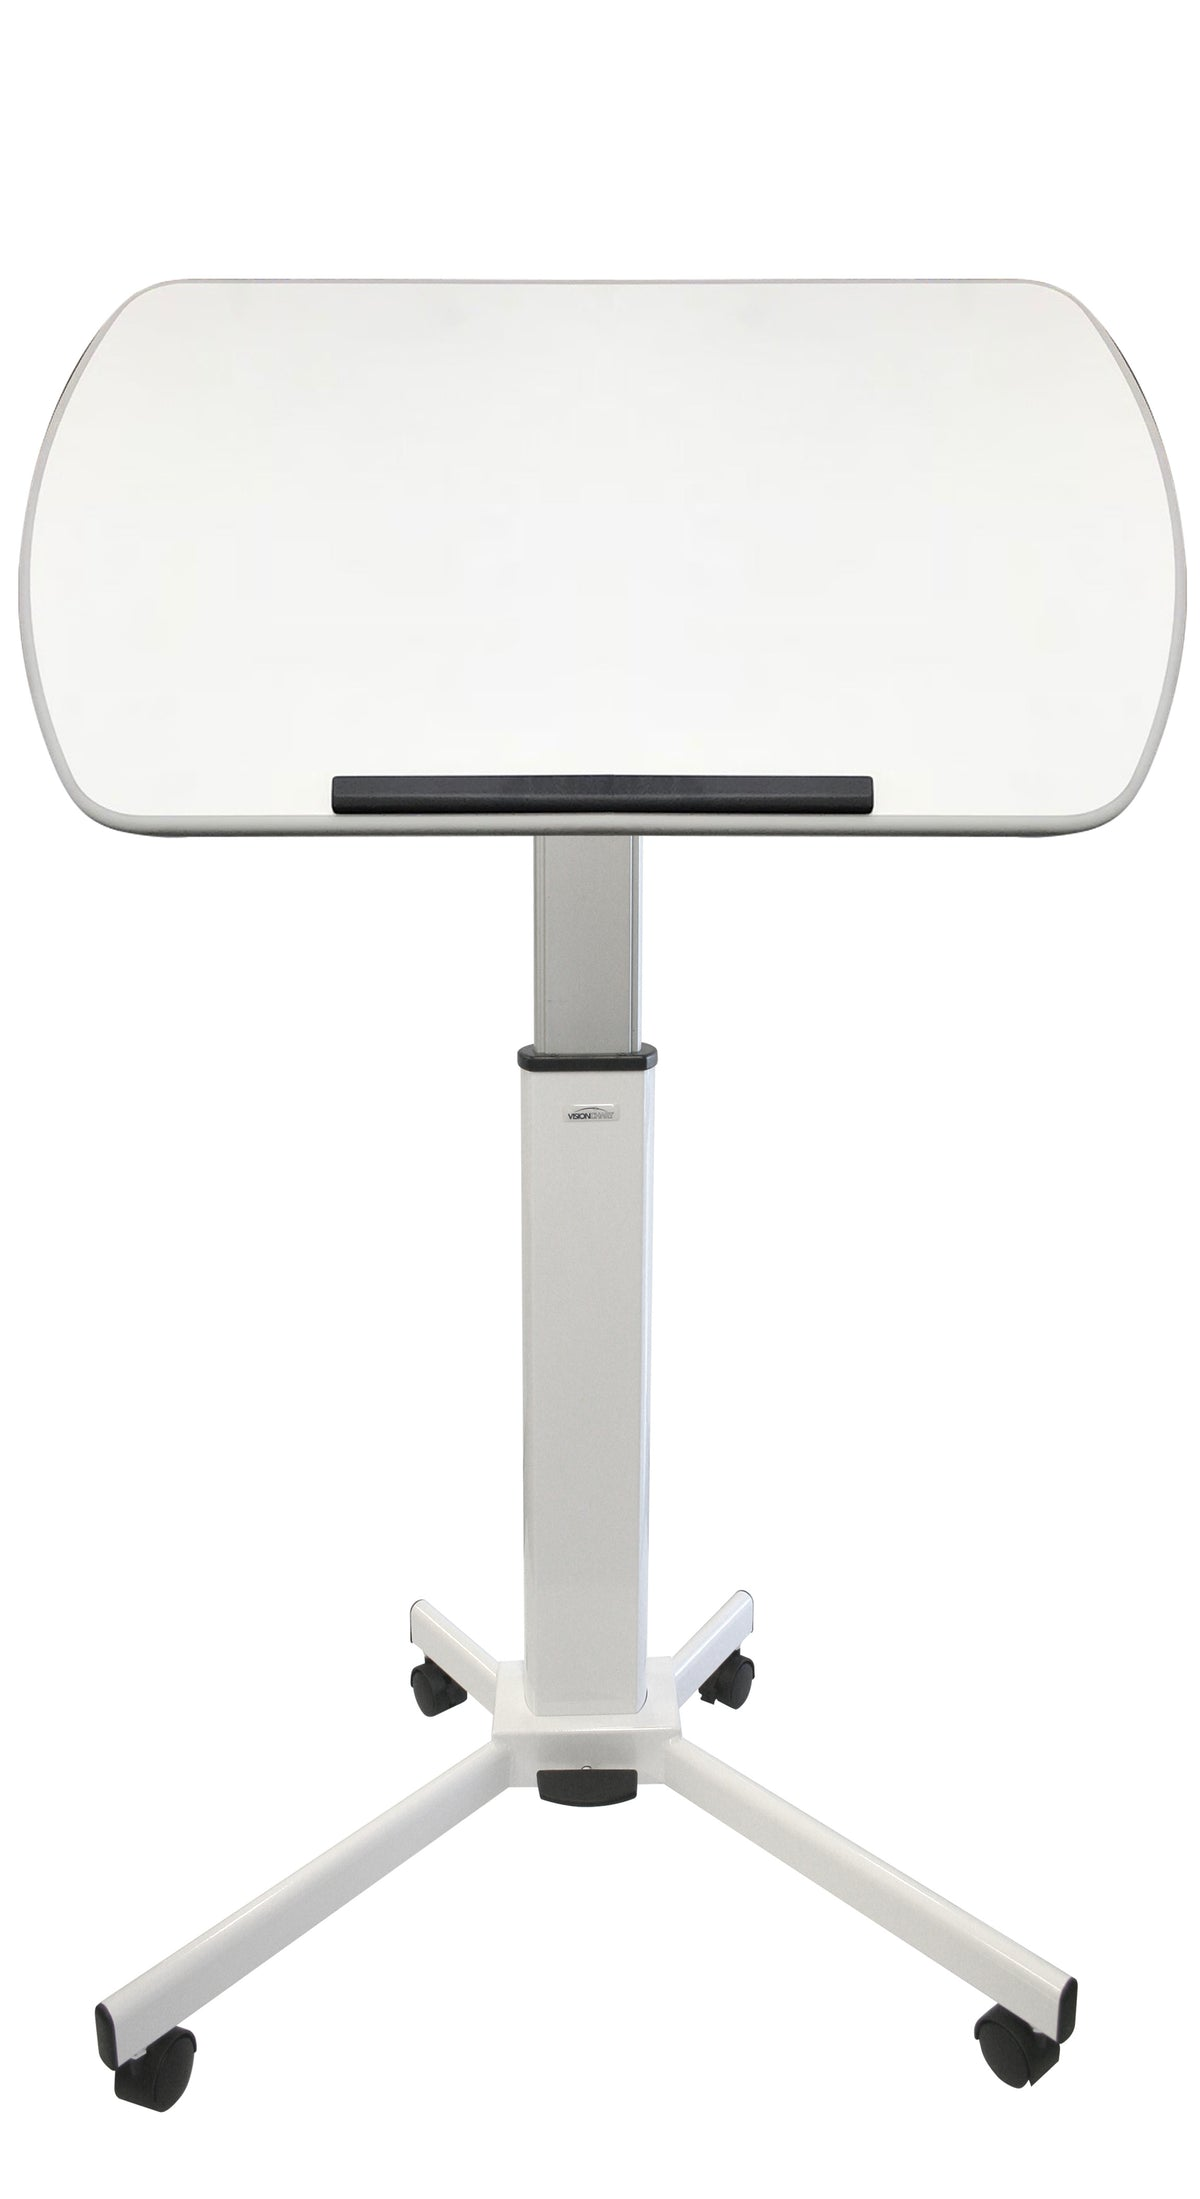 HEIGHT ADJUSTABLE LAPTOP DESK - FEE SHIPPING METRO AREAS